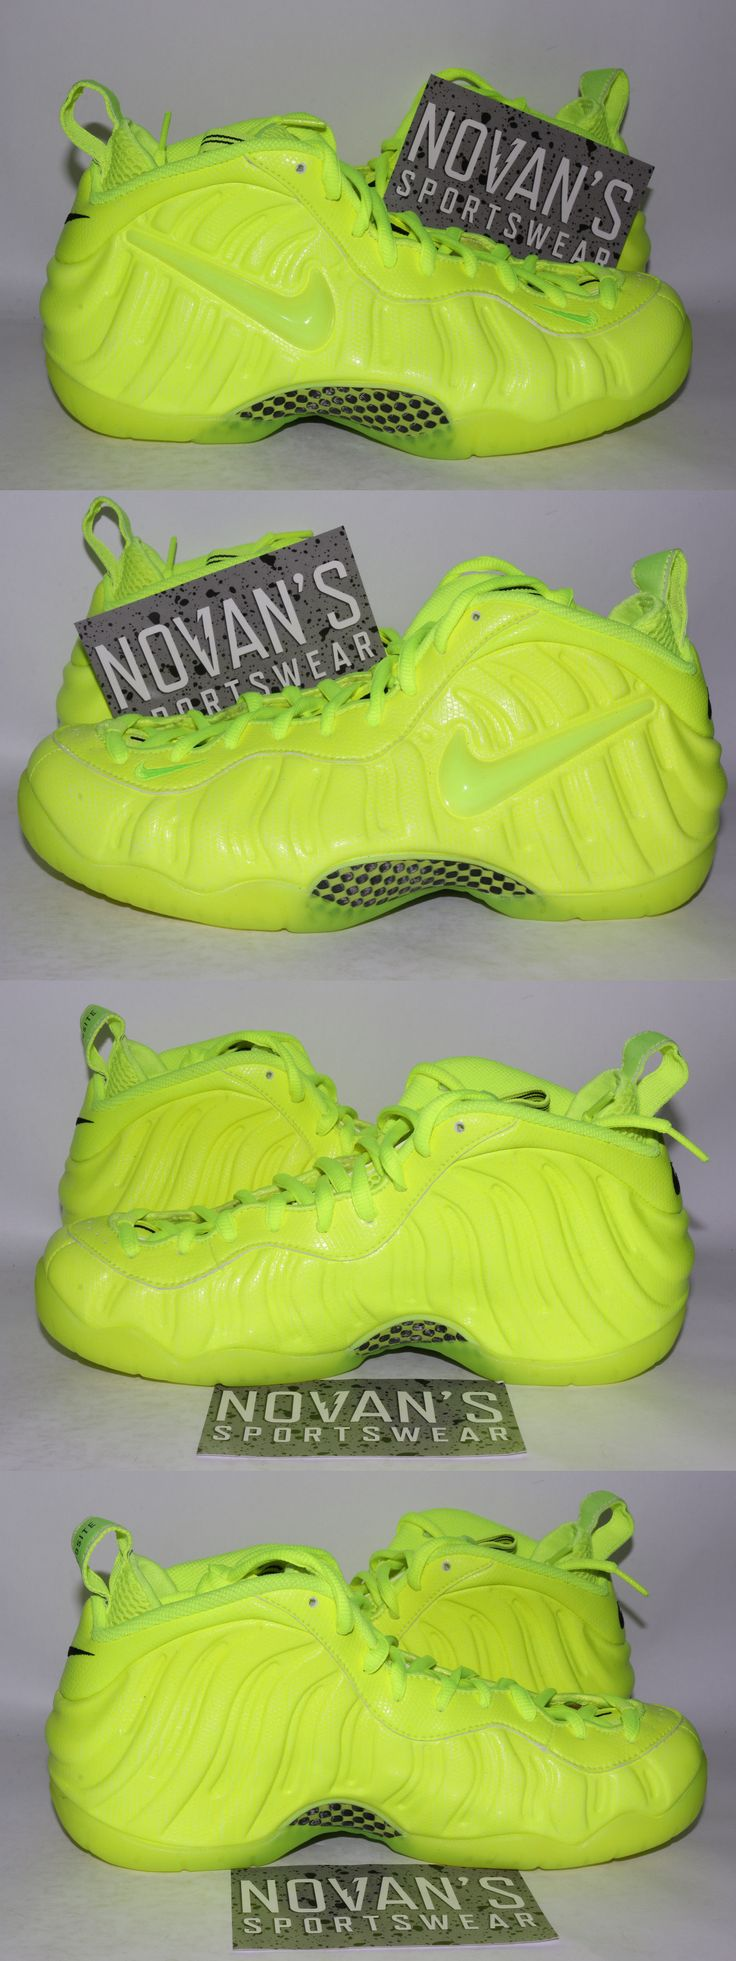 Basketball: Nike Foamposite Pro Volt Black 624041-700 Galaxy Red Blue Mirror As Tan Qs -> BUY IT NOW ONLY: $239.99 on eBay!